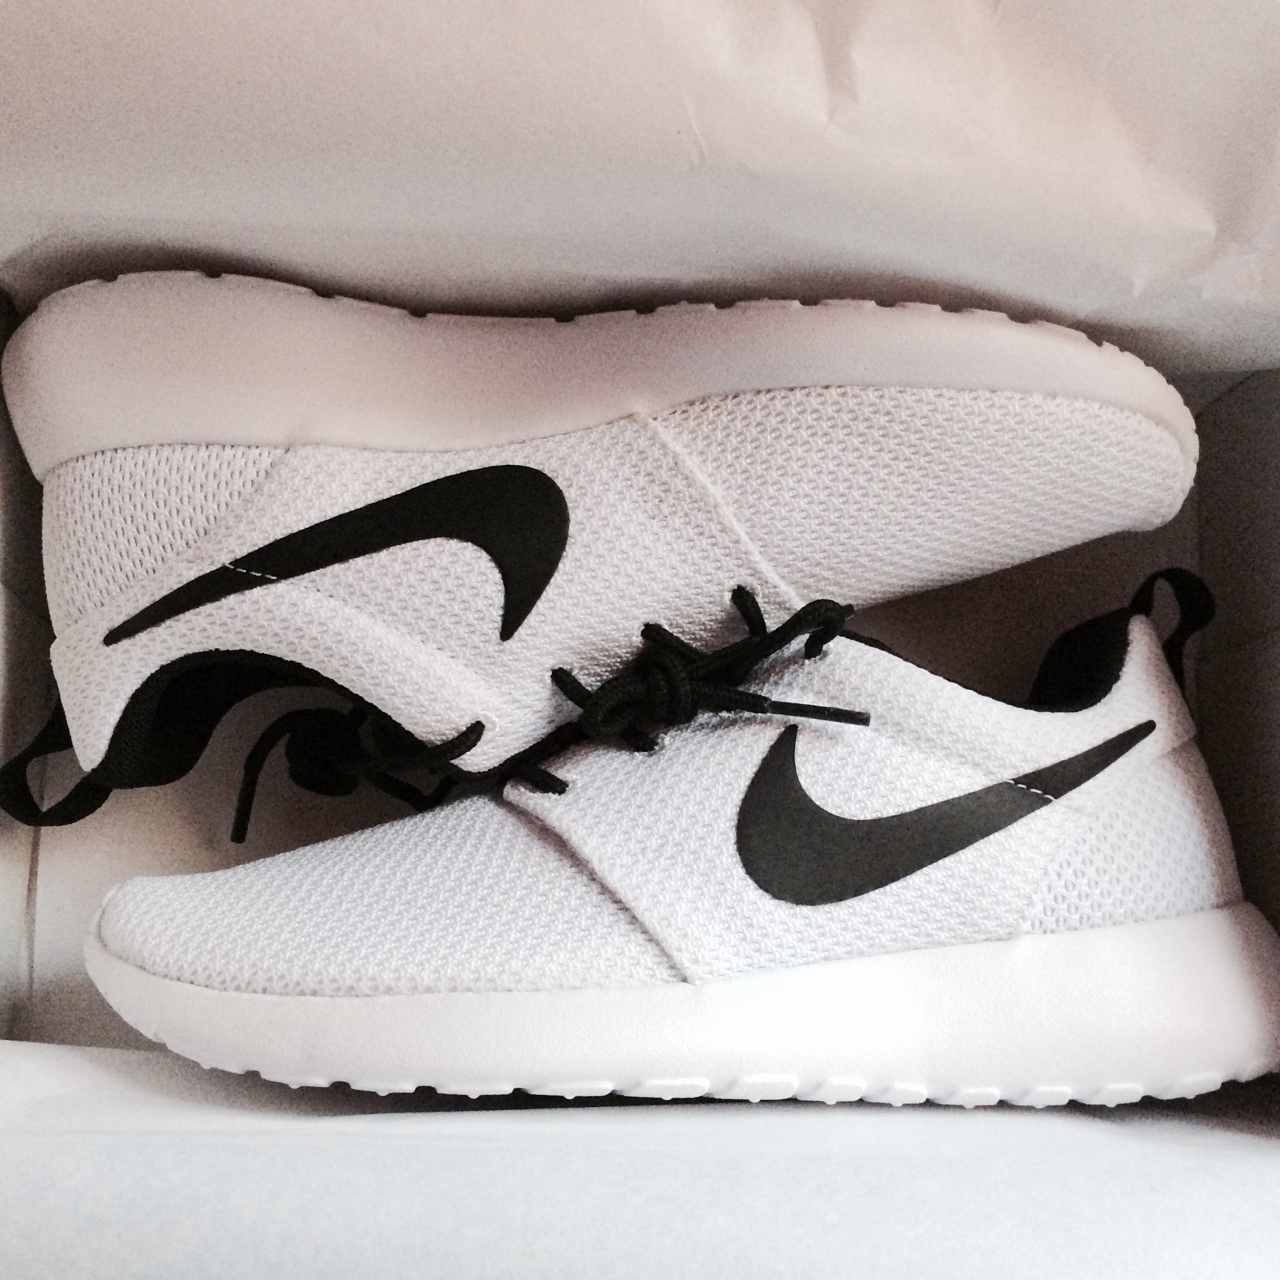 big sale d2225 49ef3 Nike Shoes Black And White Tumblr .